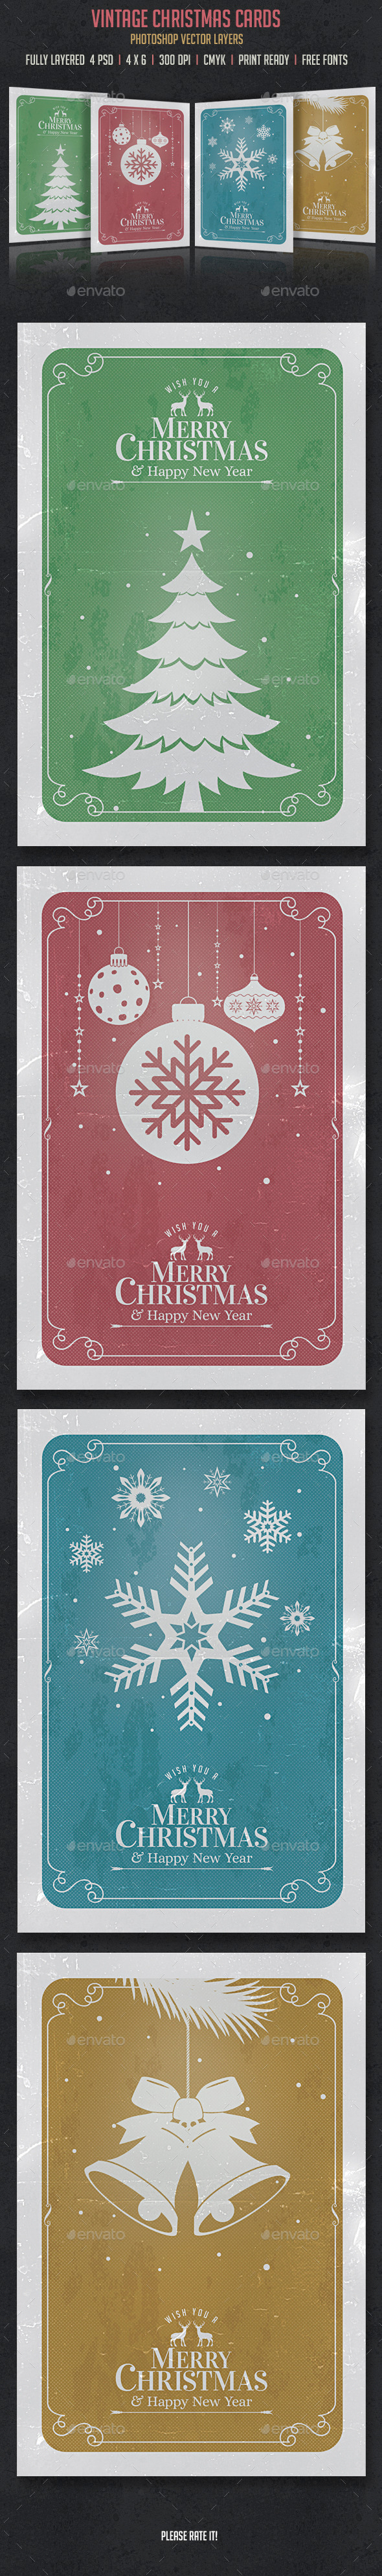 Vintage Christmas Cards Invitation